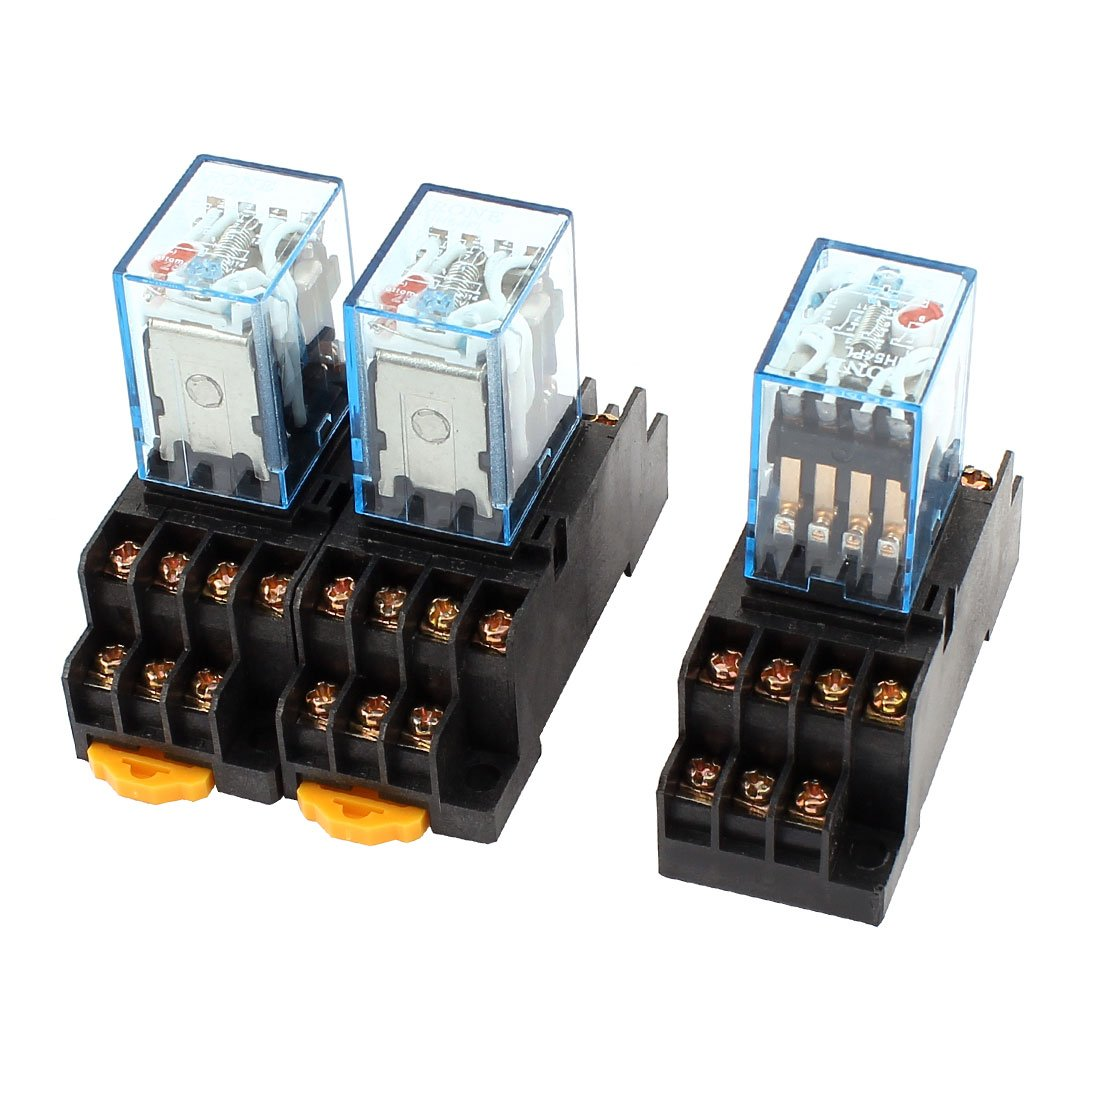 Uxcell a14072900ux0172 3Pcs AC 110/120V 5A Coil Red Lamp 4PDT 14Pin Power Relay + SOCKET Base